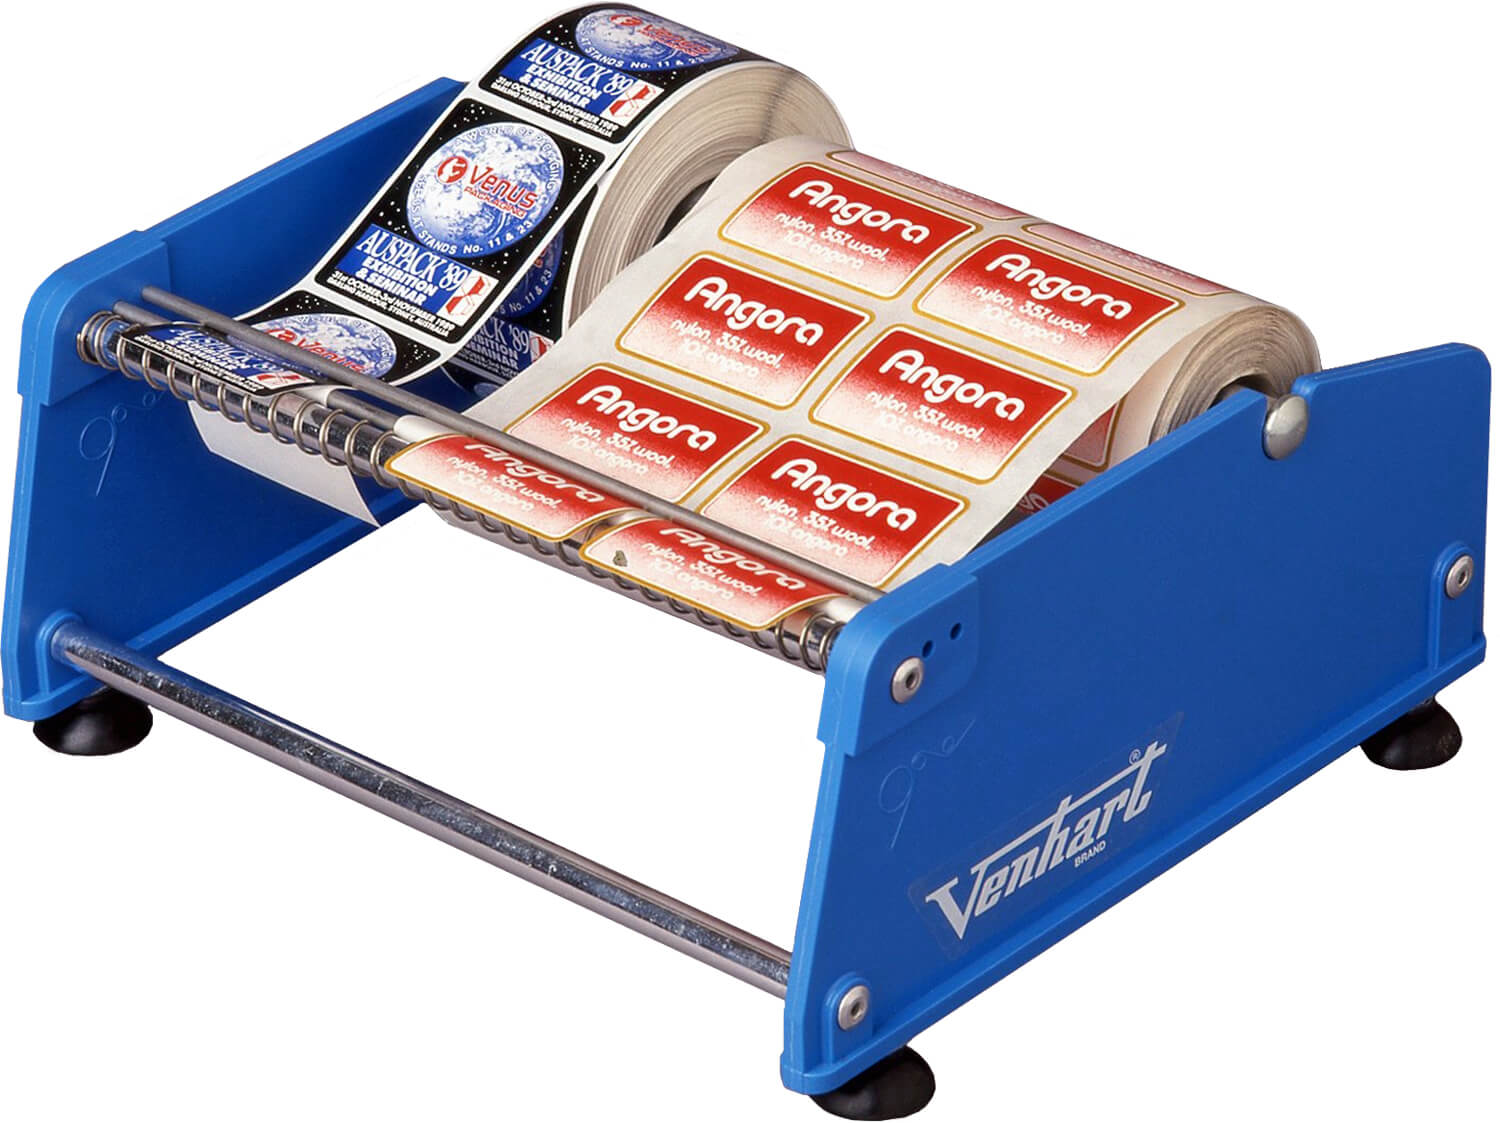 Venus VH1209a Label Dispenser